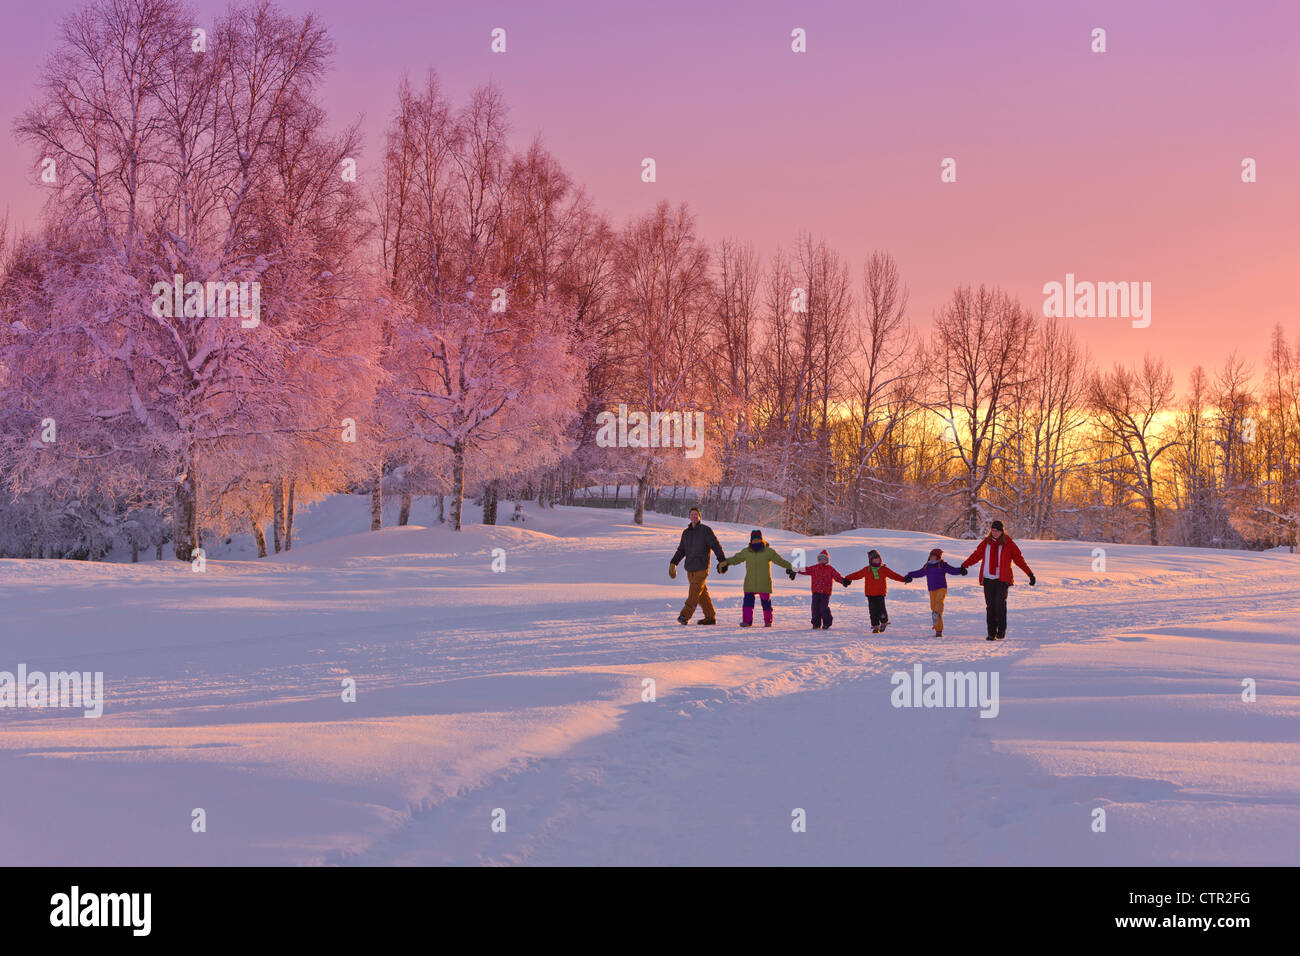 Family group holding hands walk on snow path sunset birch forest in background Russian Jack Springs Park Anchorage - Stock Image